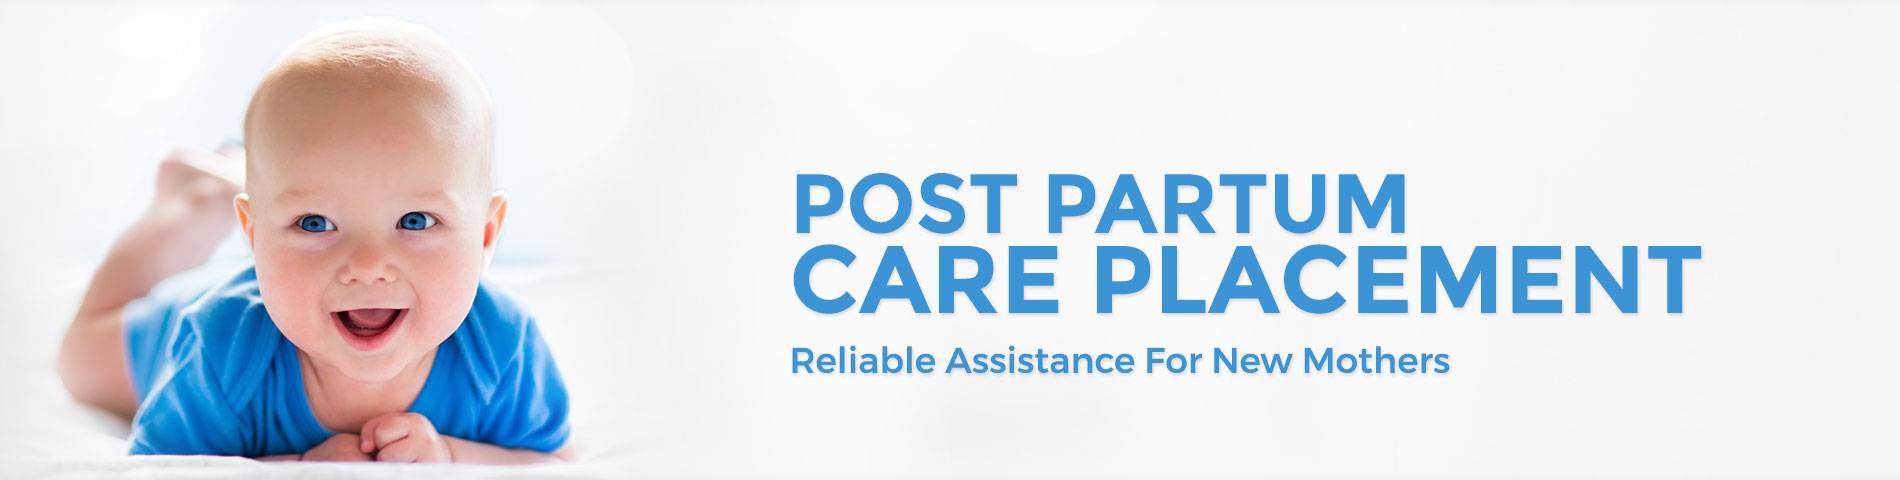 Post Partum Care Placement